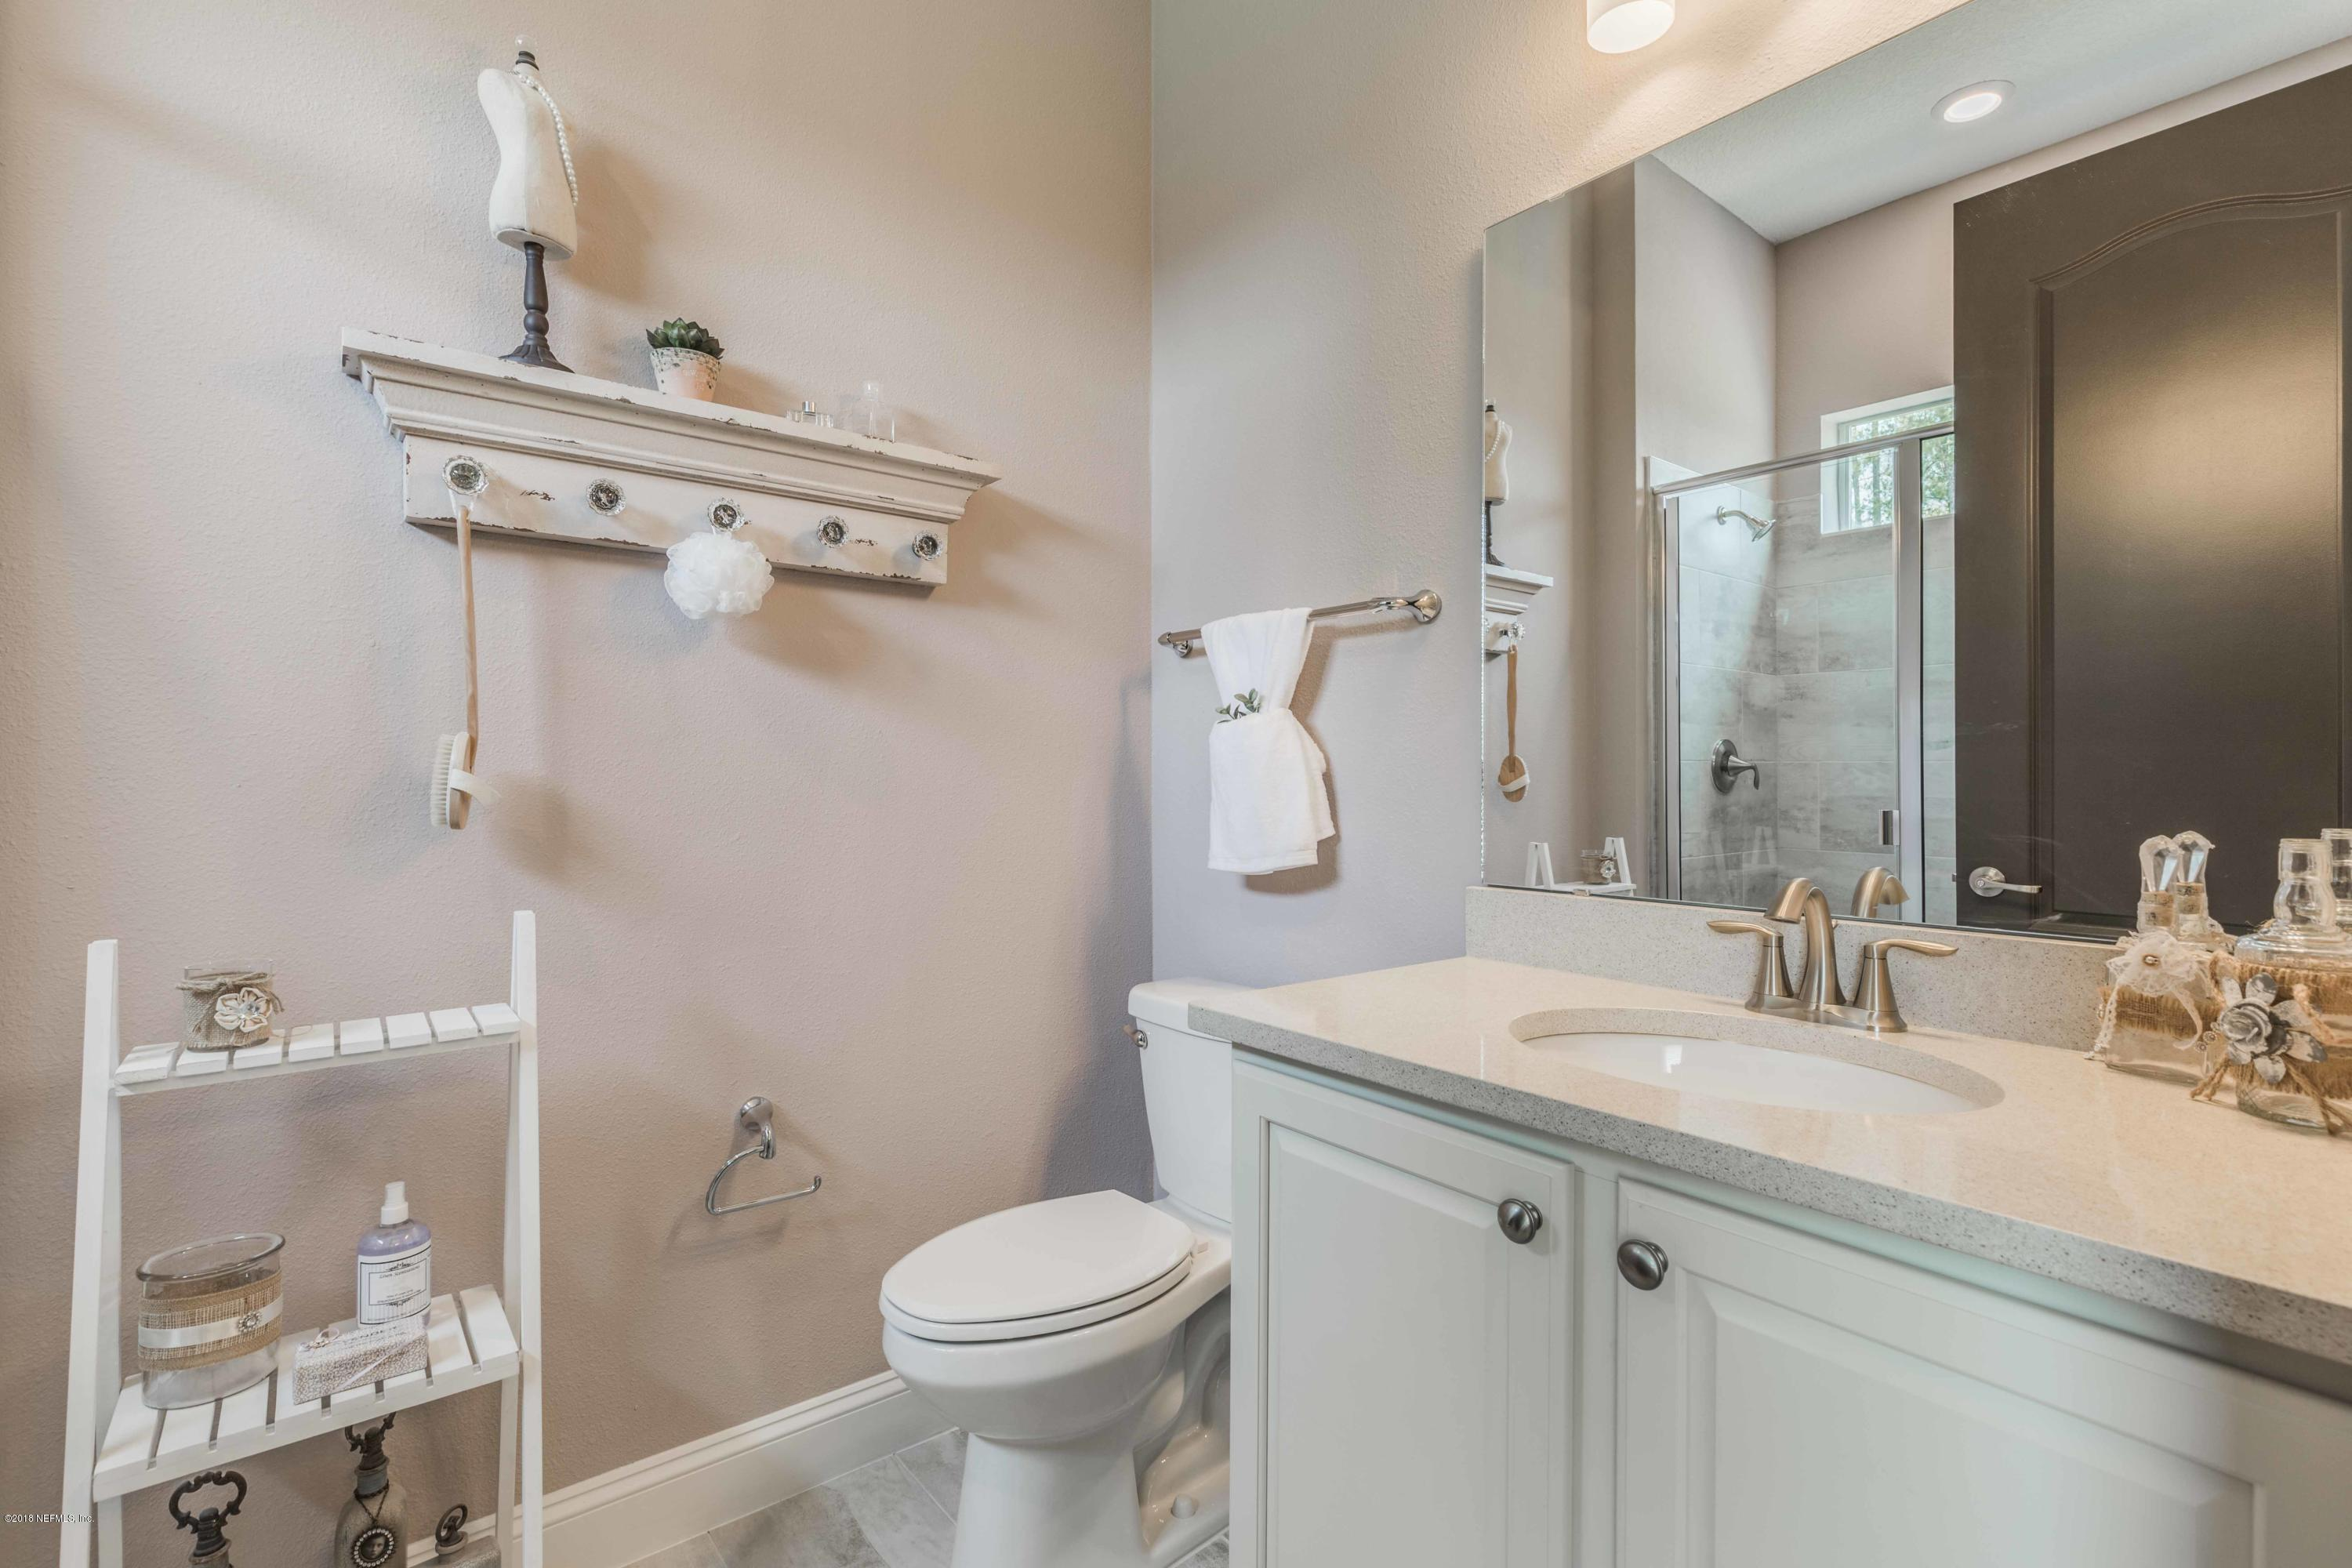 92 ANTOLIN, ST AUGUSTINE, FLORIDA 32095, 4 Bedrooms Bedrooms, ,4 BathroomsBathrooms,Residential - single family,For sale,ANTOLIN,948201